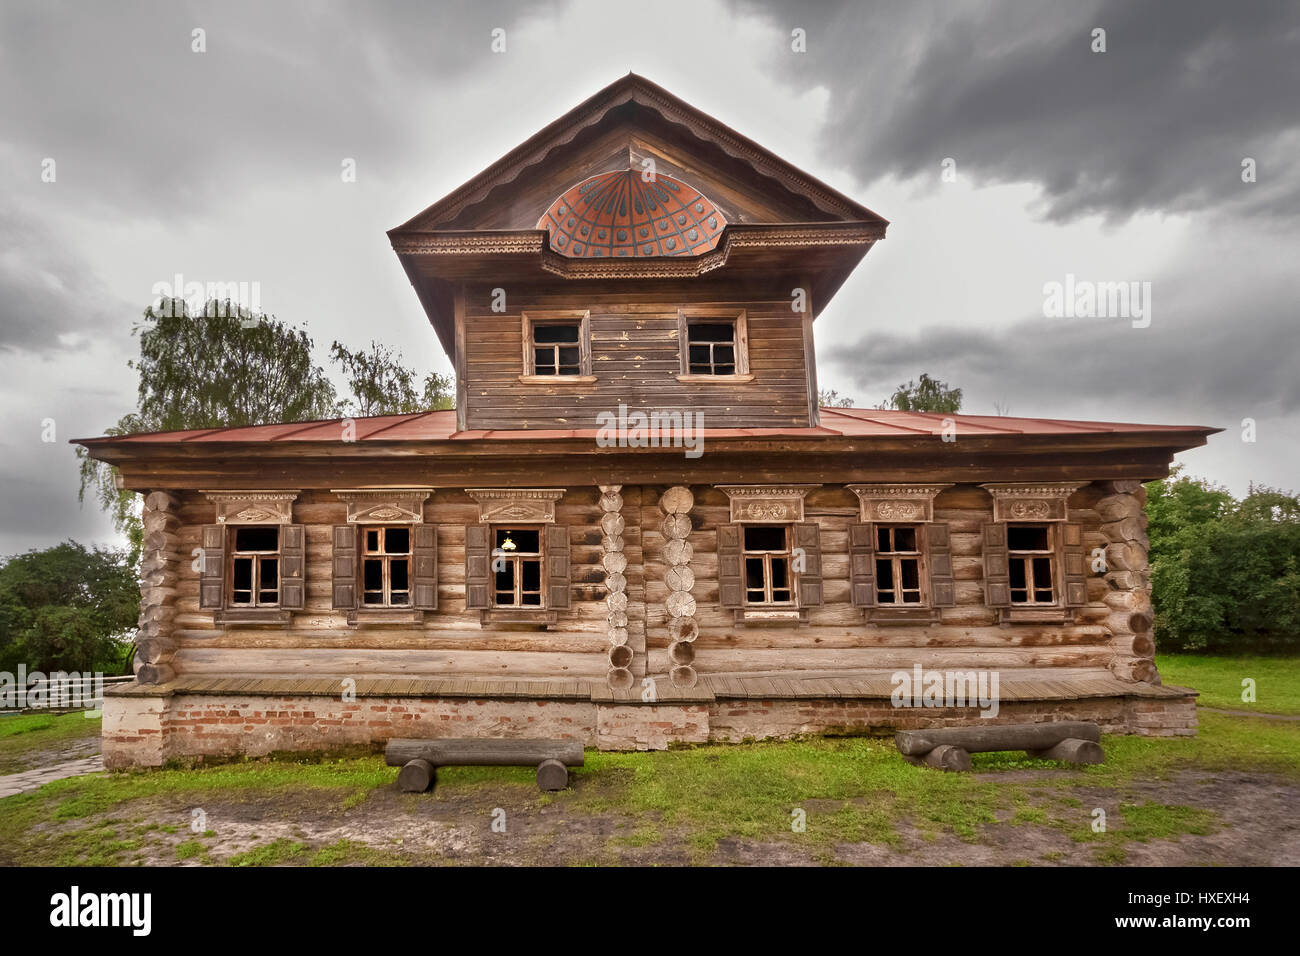 Old wooden house in suzdal - Stock Image